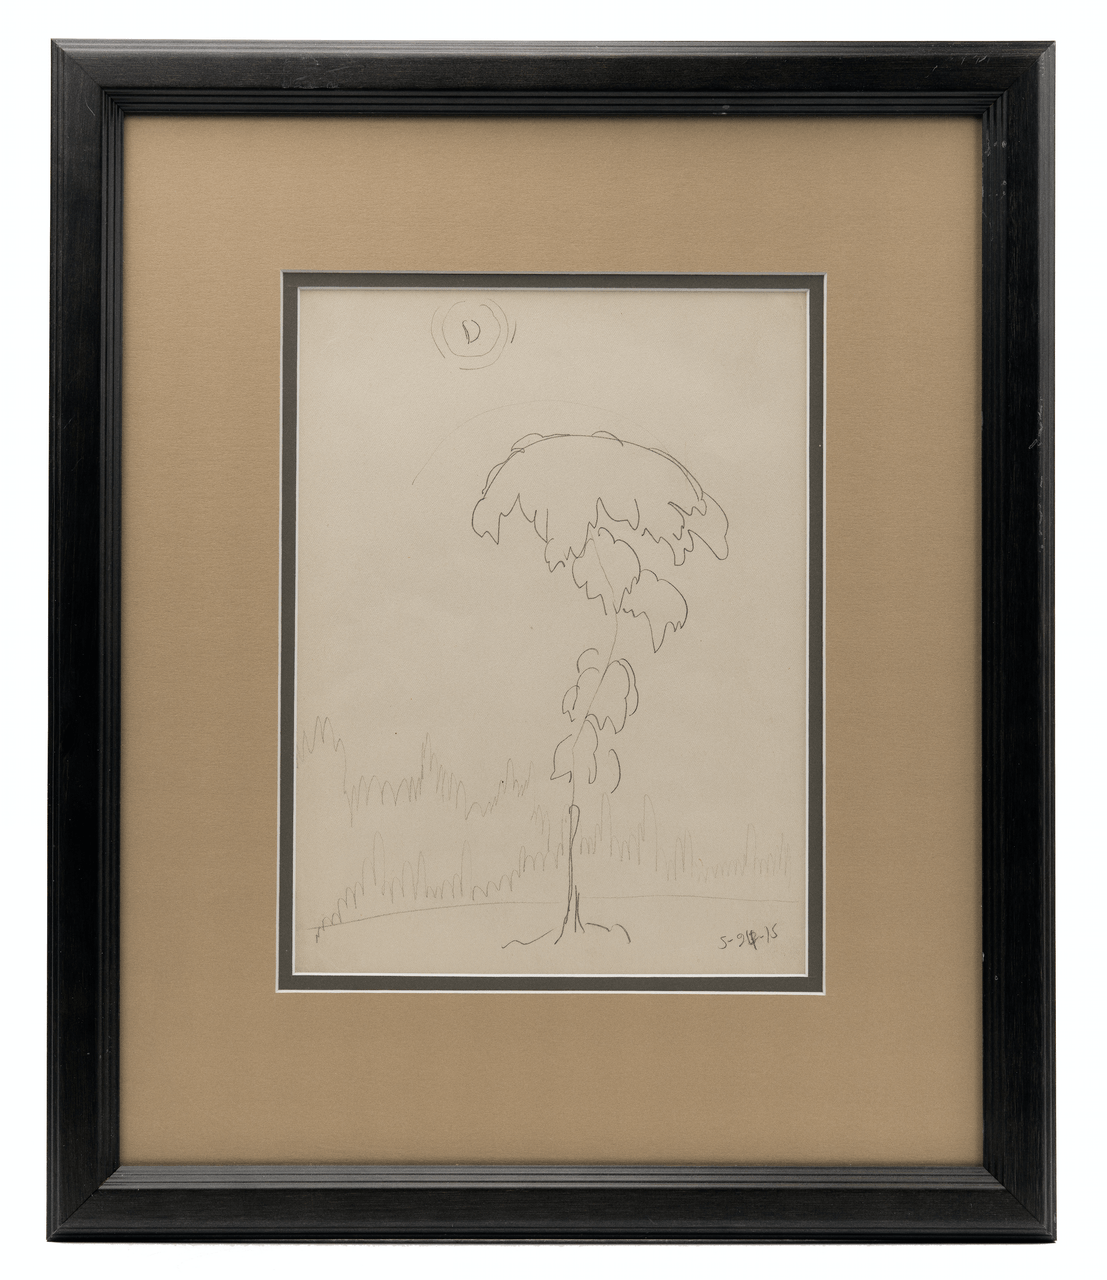 An Original Drawing By Charles E. Burchfield  1893-1967 A Tree Study Dated 1915